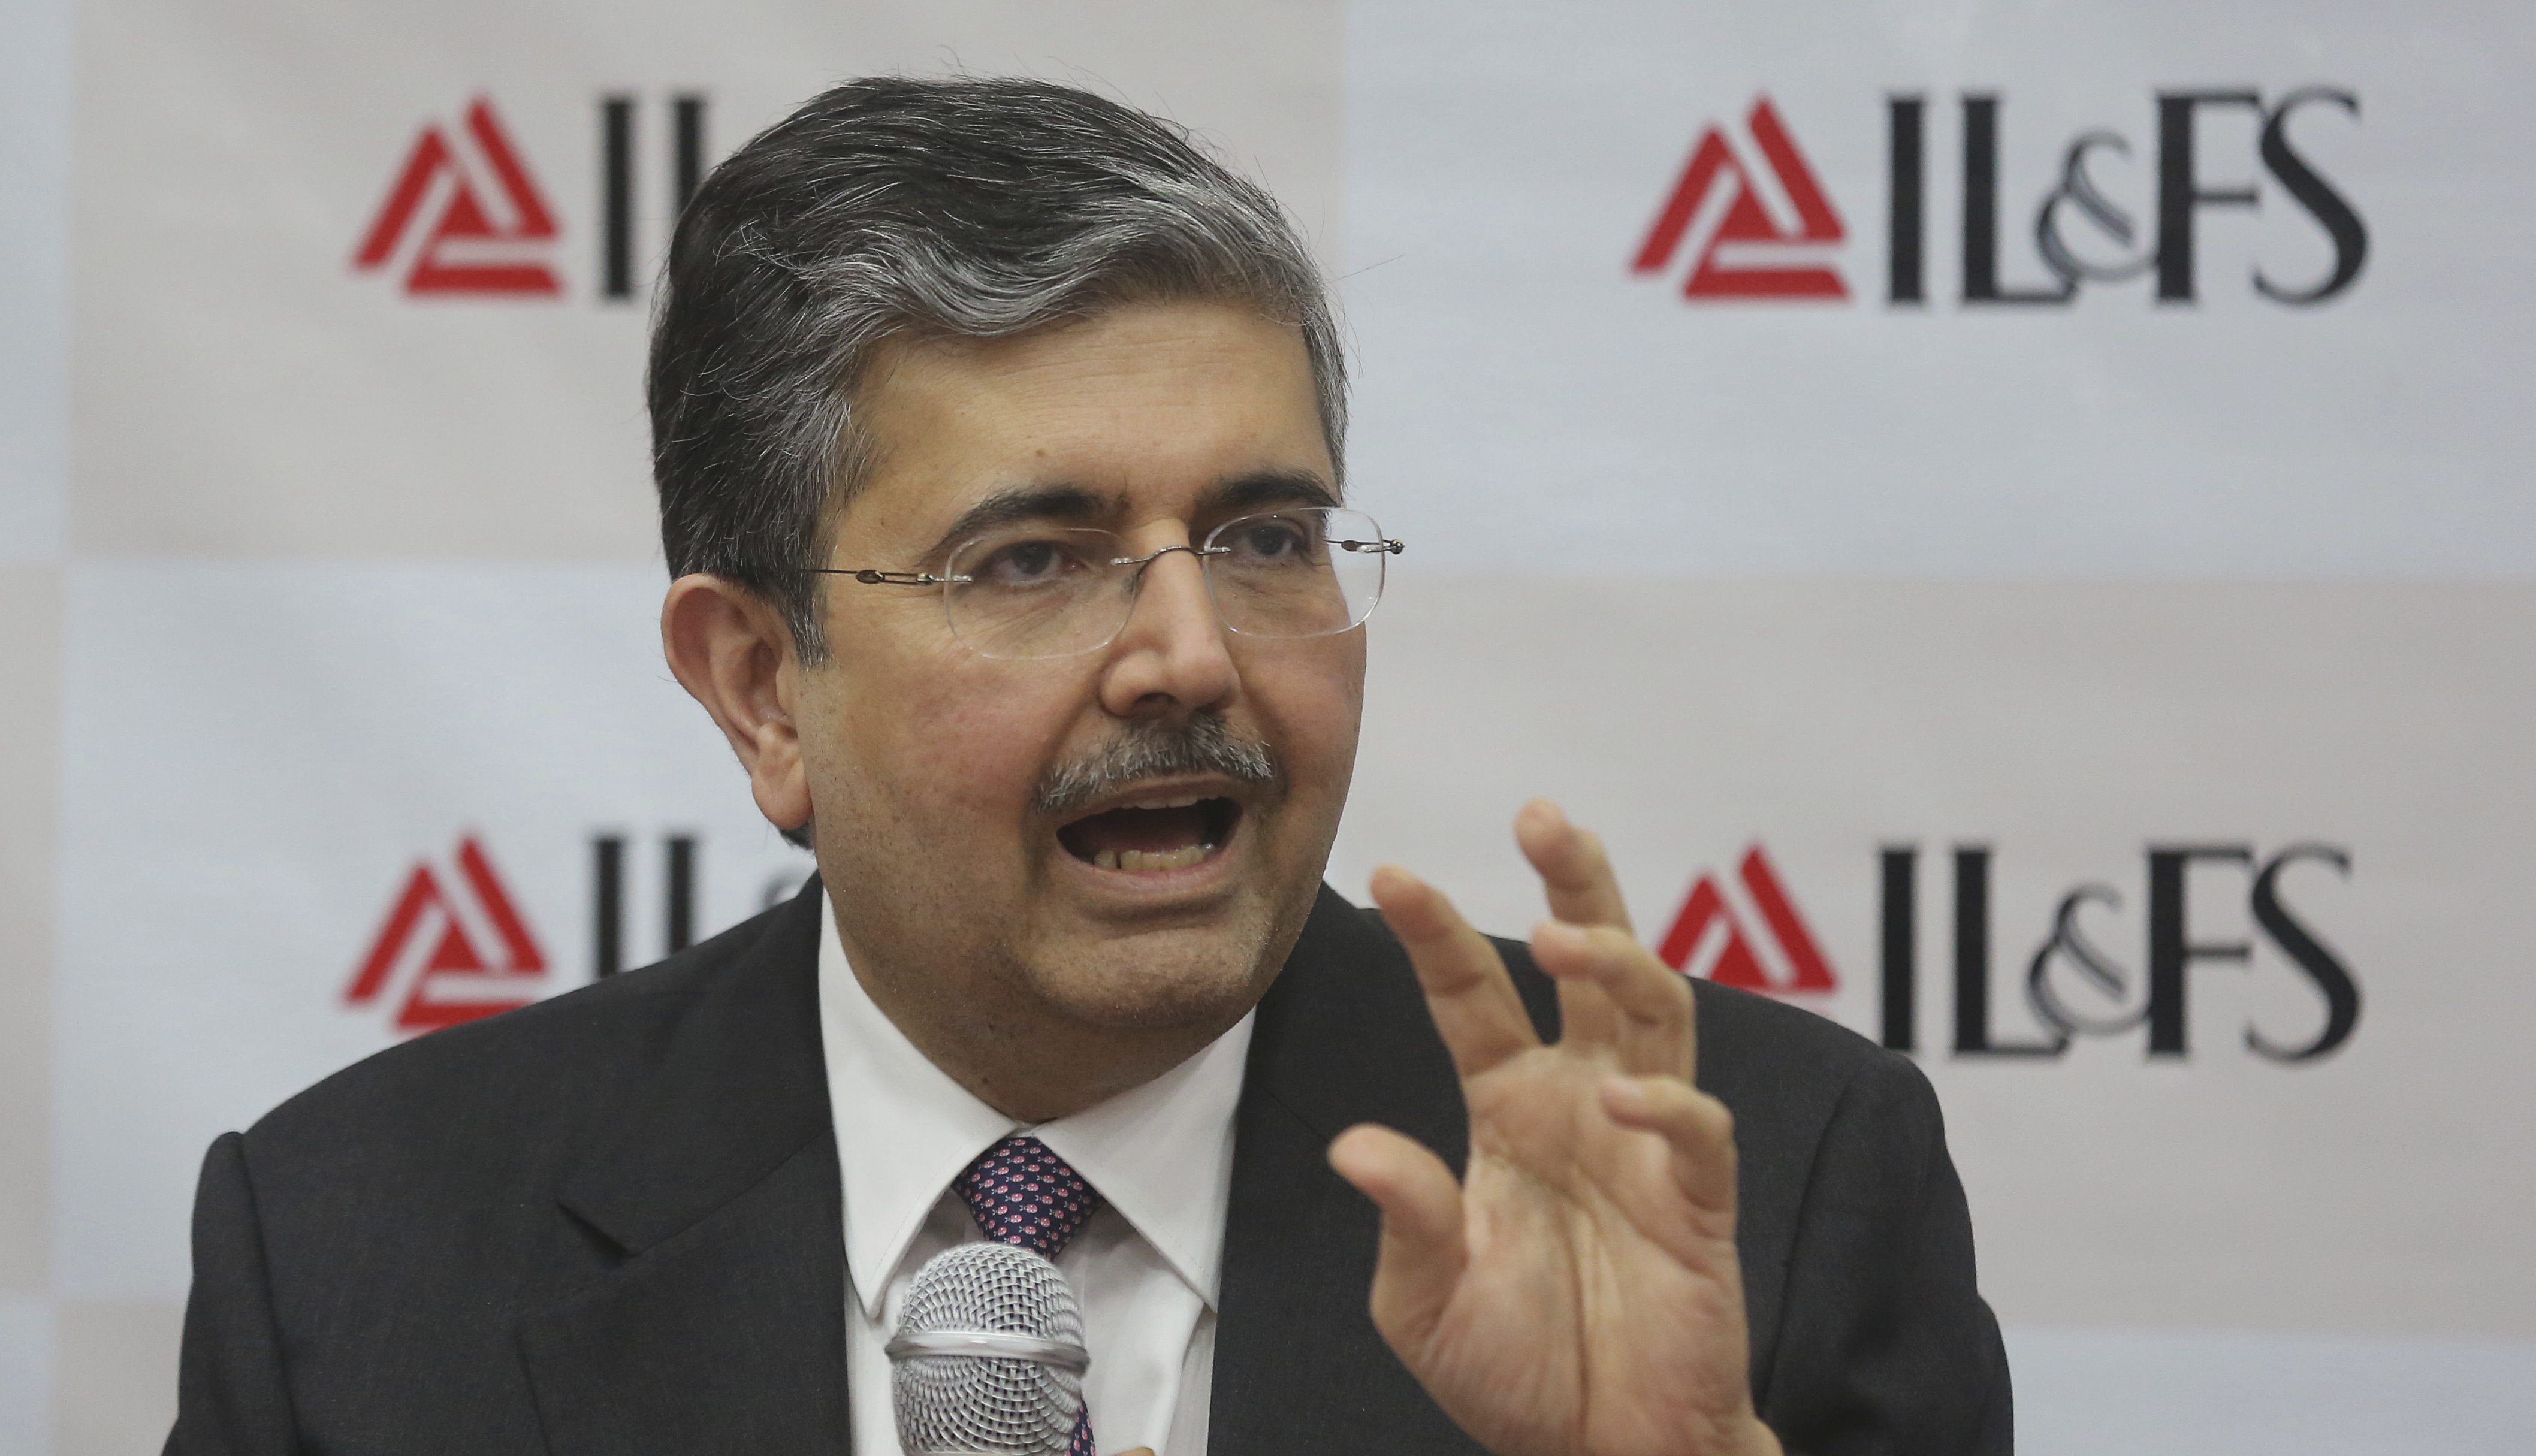 Uday Kotak, non executive chairman of the newly constituted board for Infrastructure Leasing & Financial Services (IL&FS) address a news conference in Mumbai - PTI